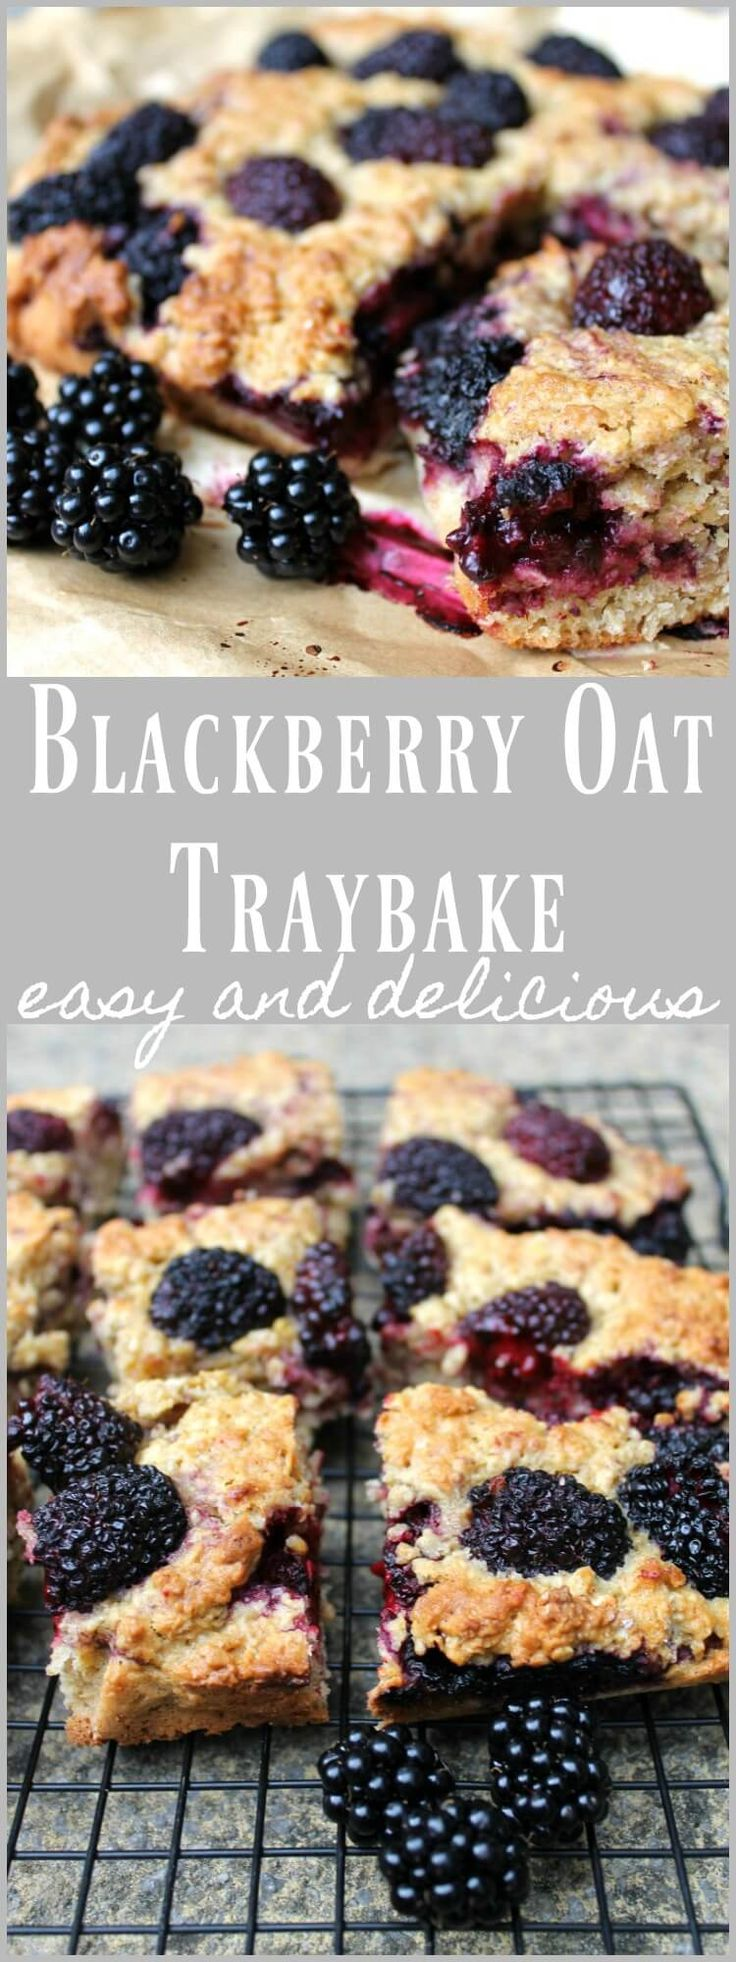 Blackberry oaty traybake cake - Thinking about having this for a special breakfast bake!